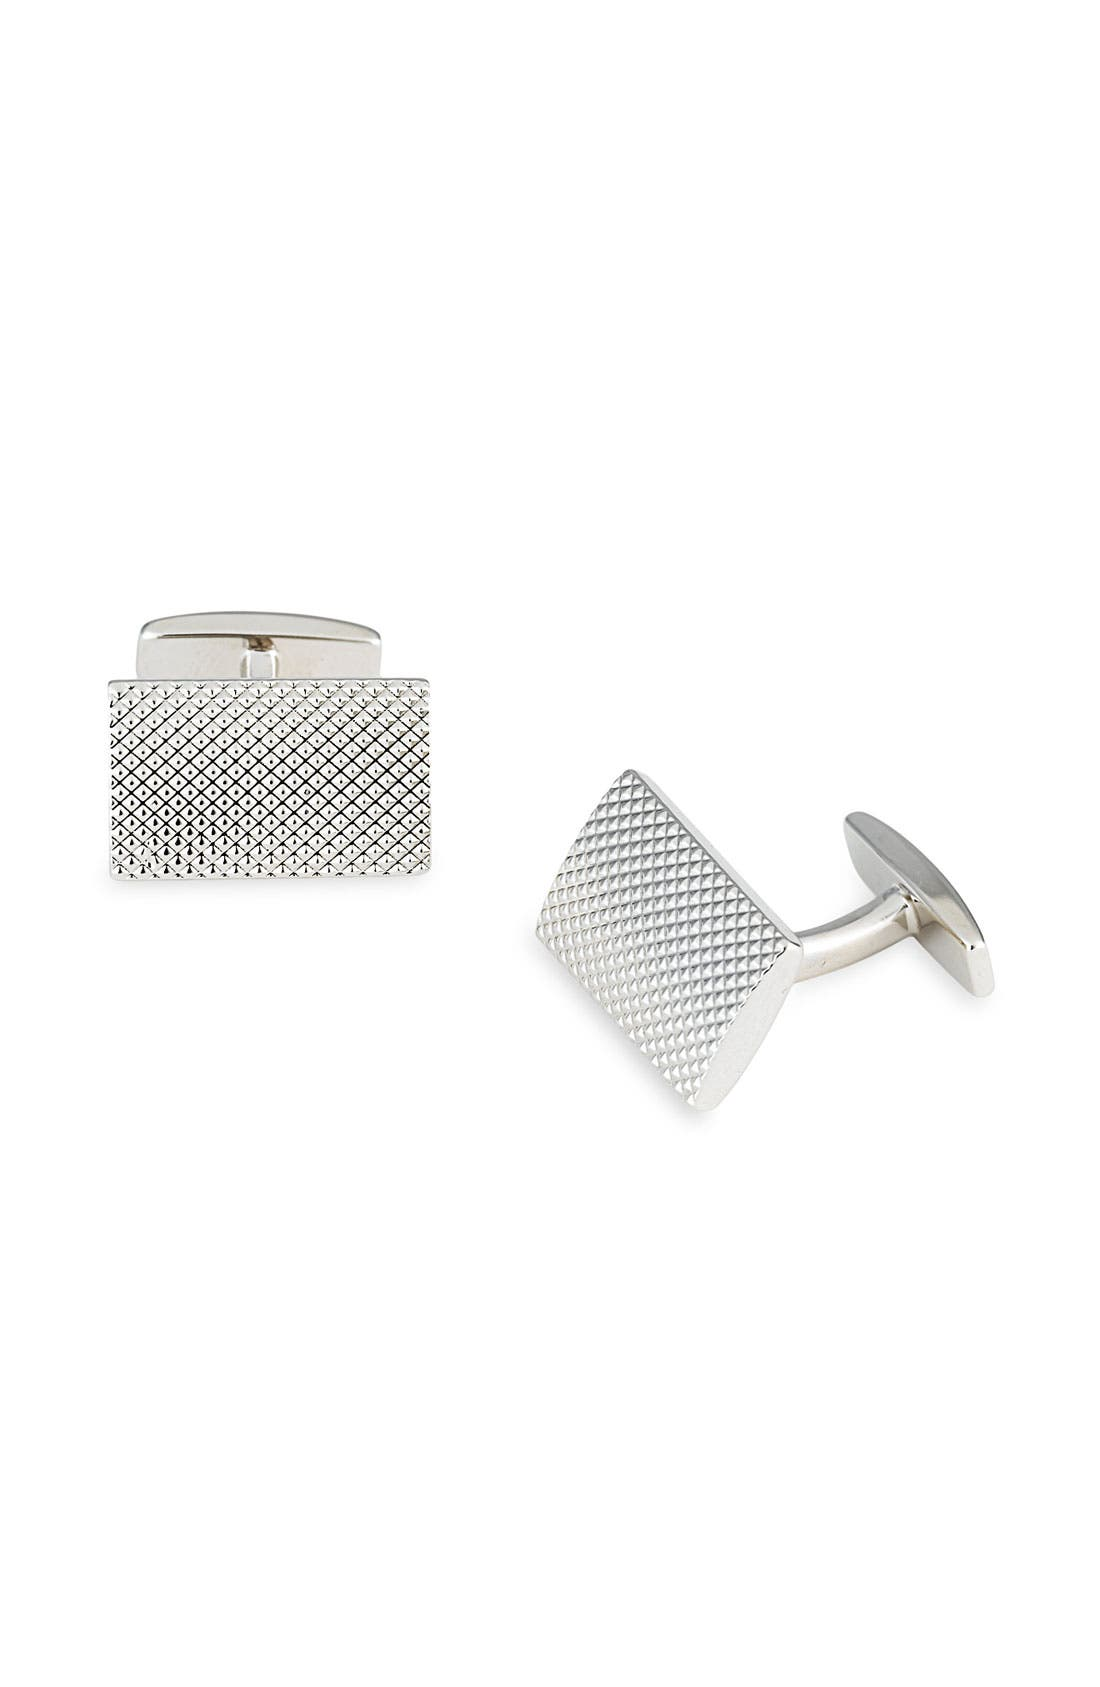 Main Image - BOSS Black 'Layden' Cuff Links